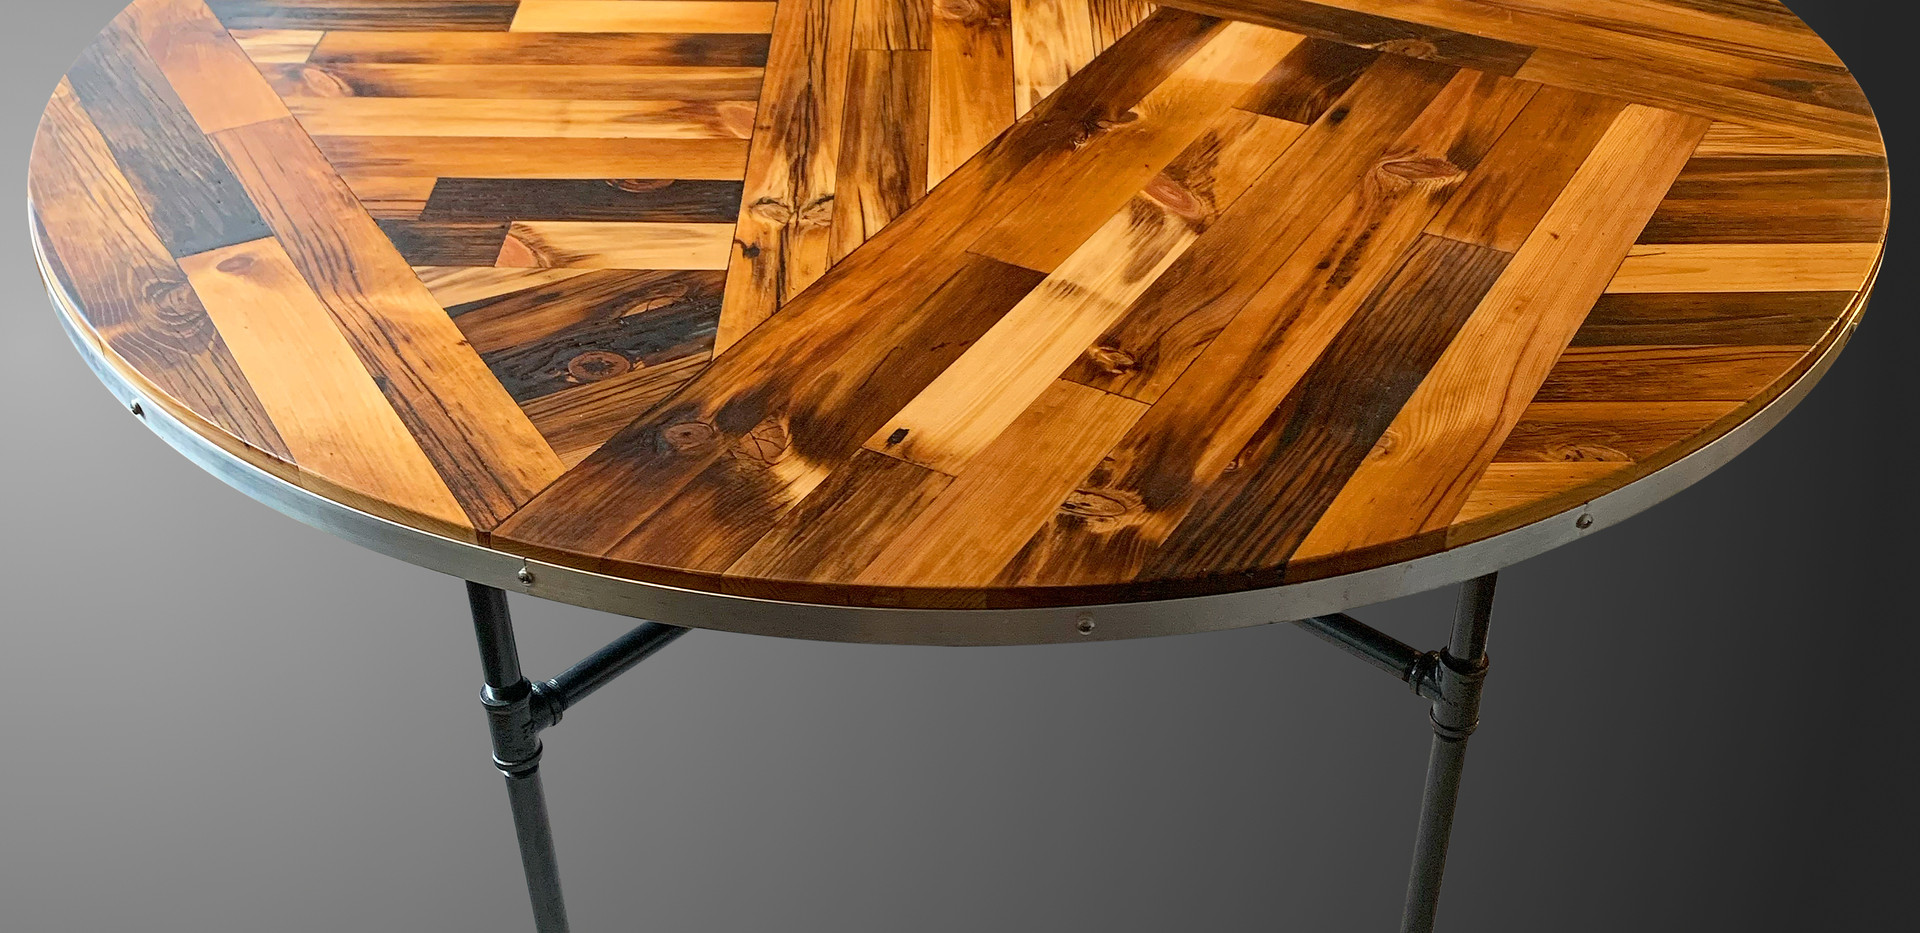 Scissor Tail Round Table